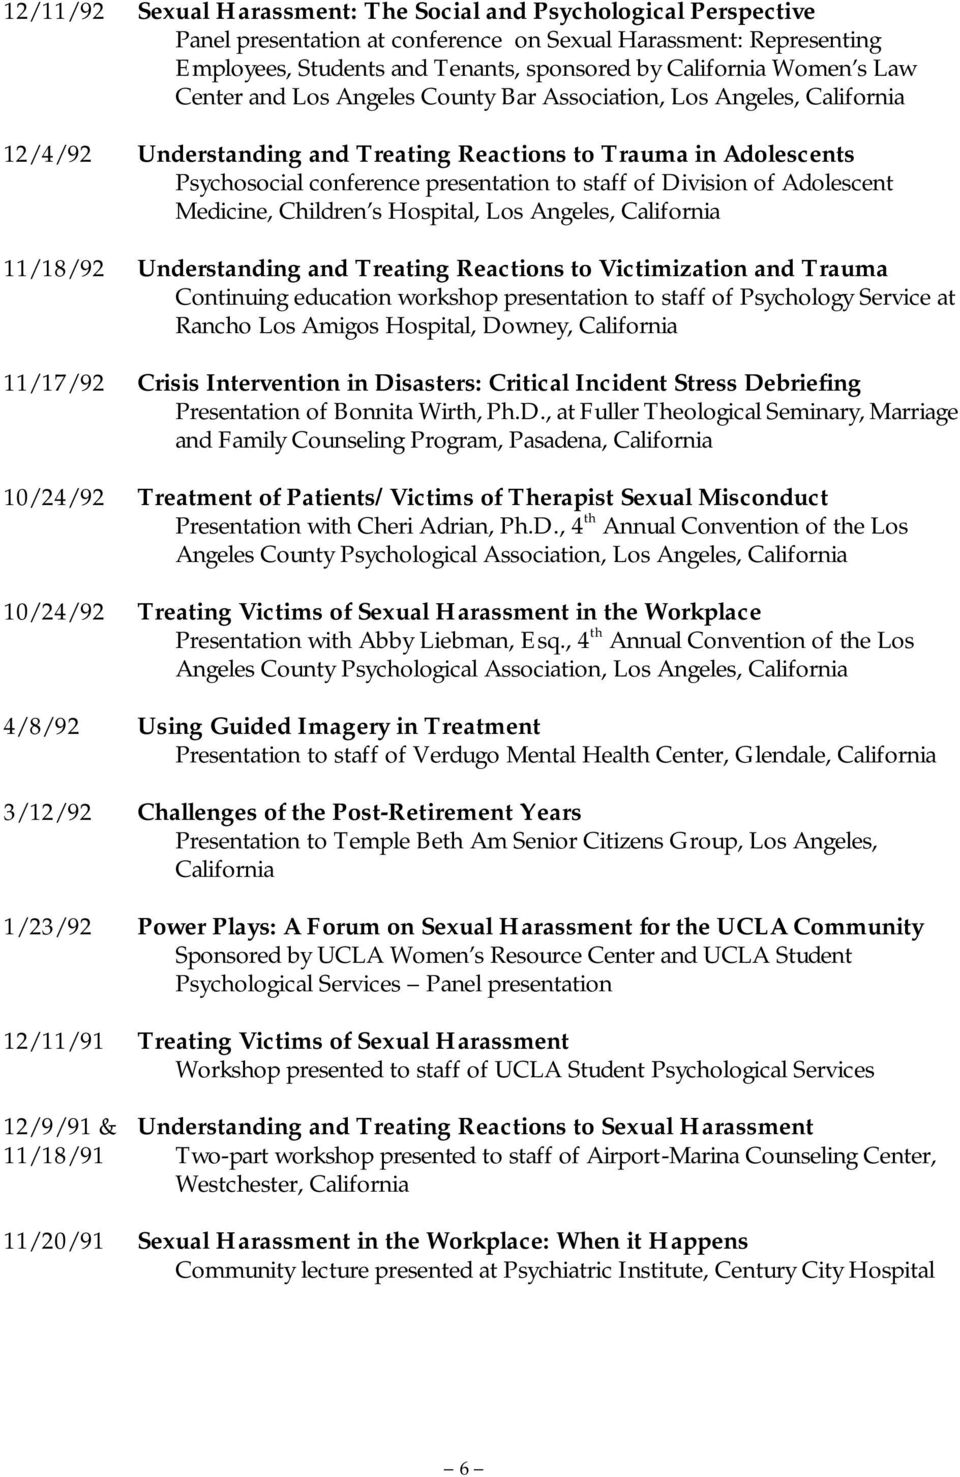 Division of Adolescent Medicine, Children s Hospital, Los Angeles, California 11/18/92 Understanding and Treating Reactions to Victimization and Trauma Continuing education workshop presentation to